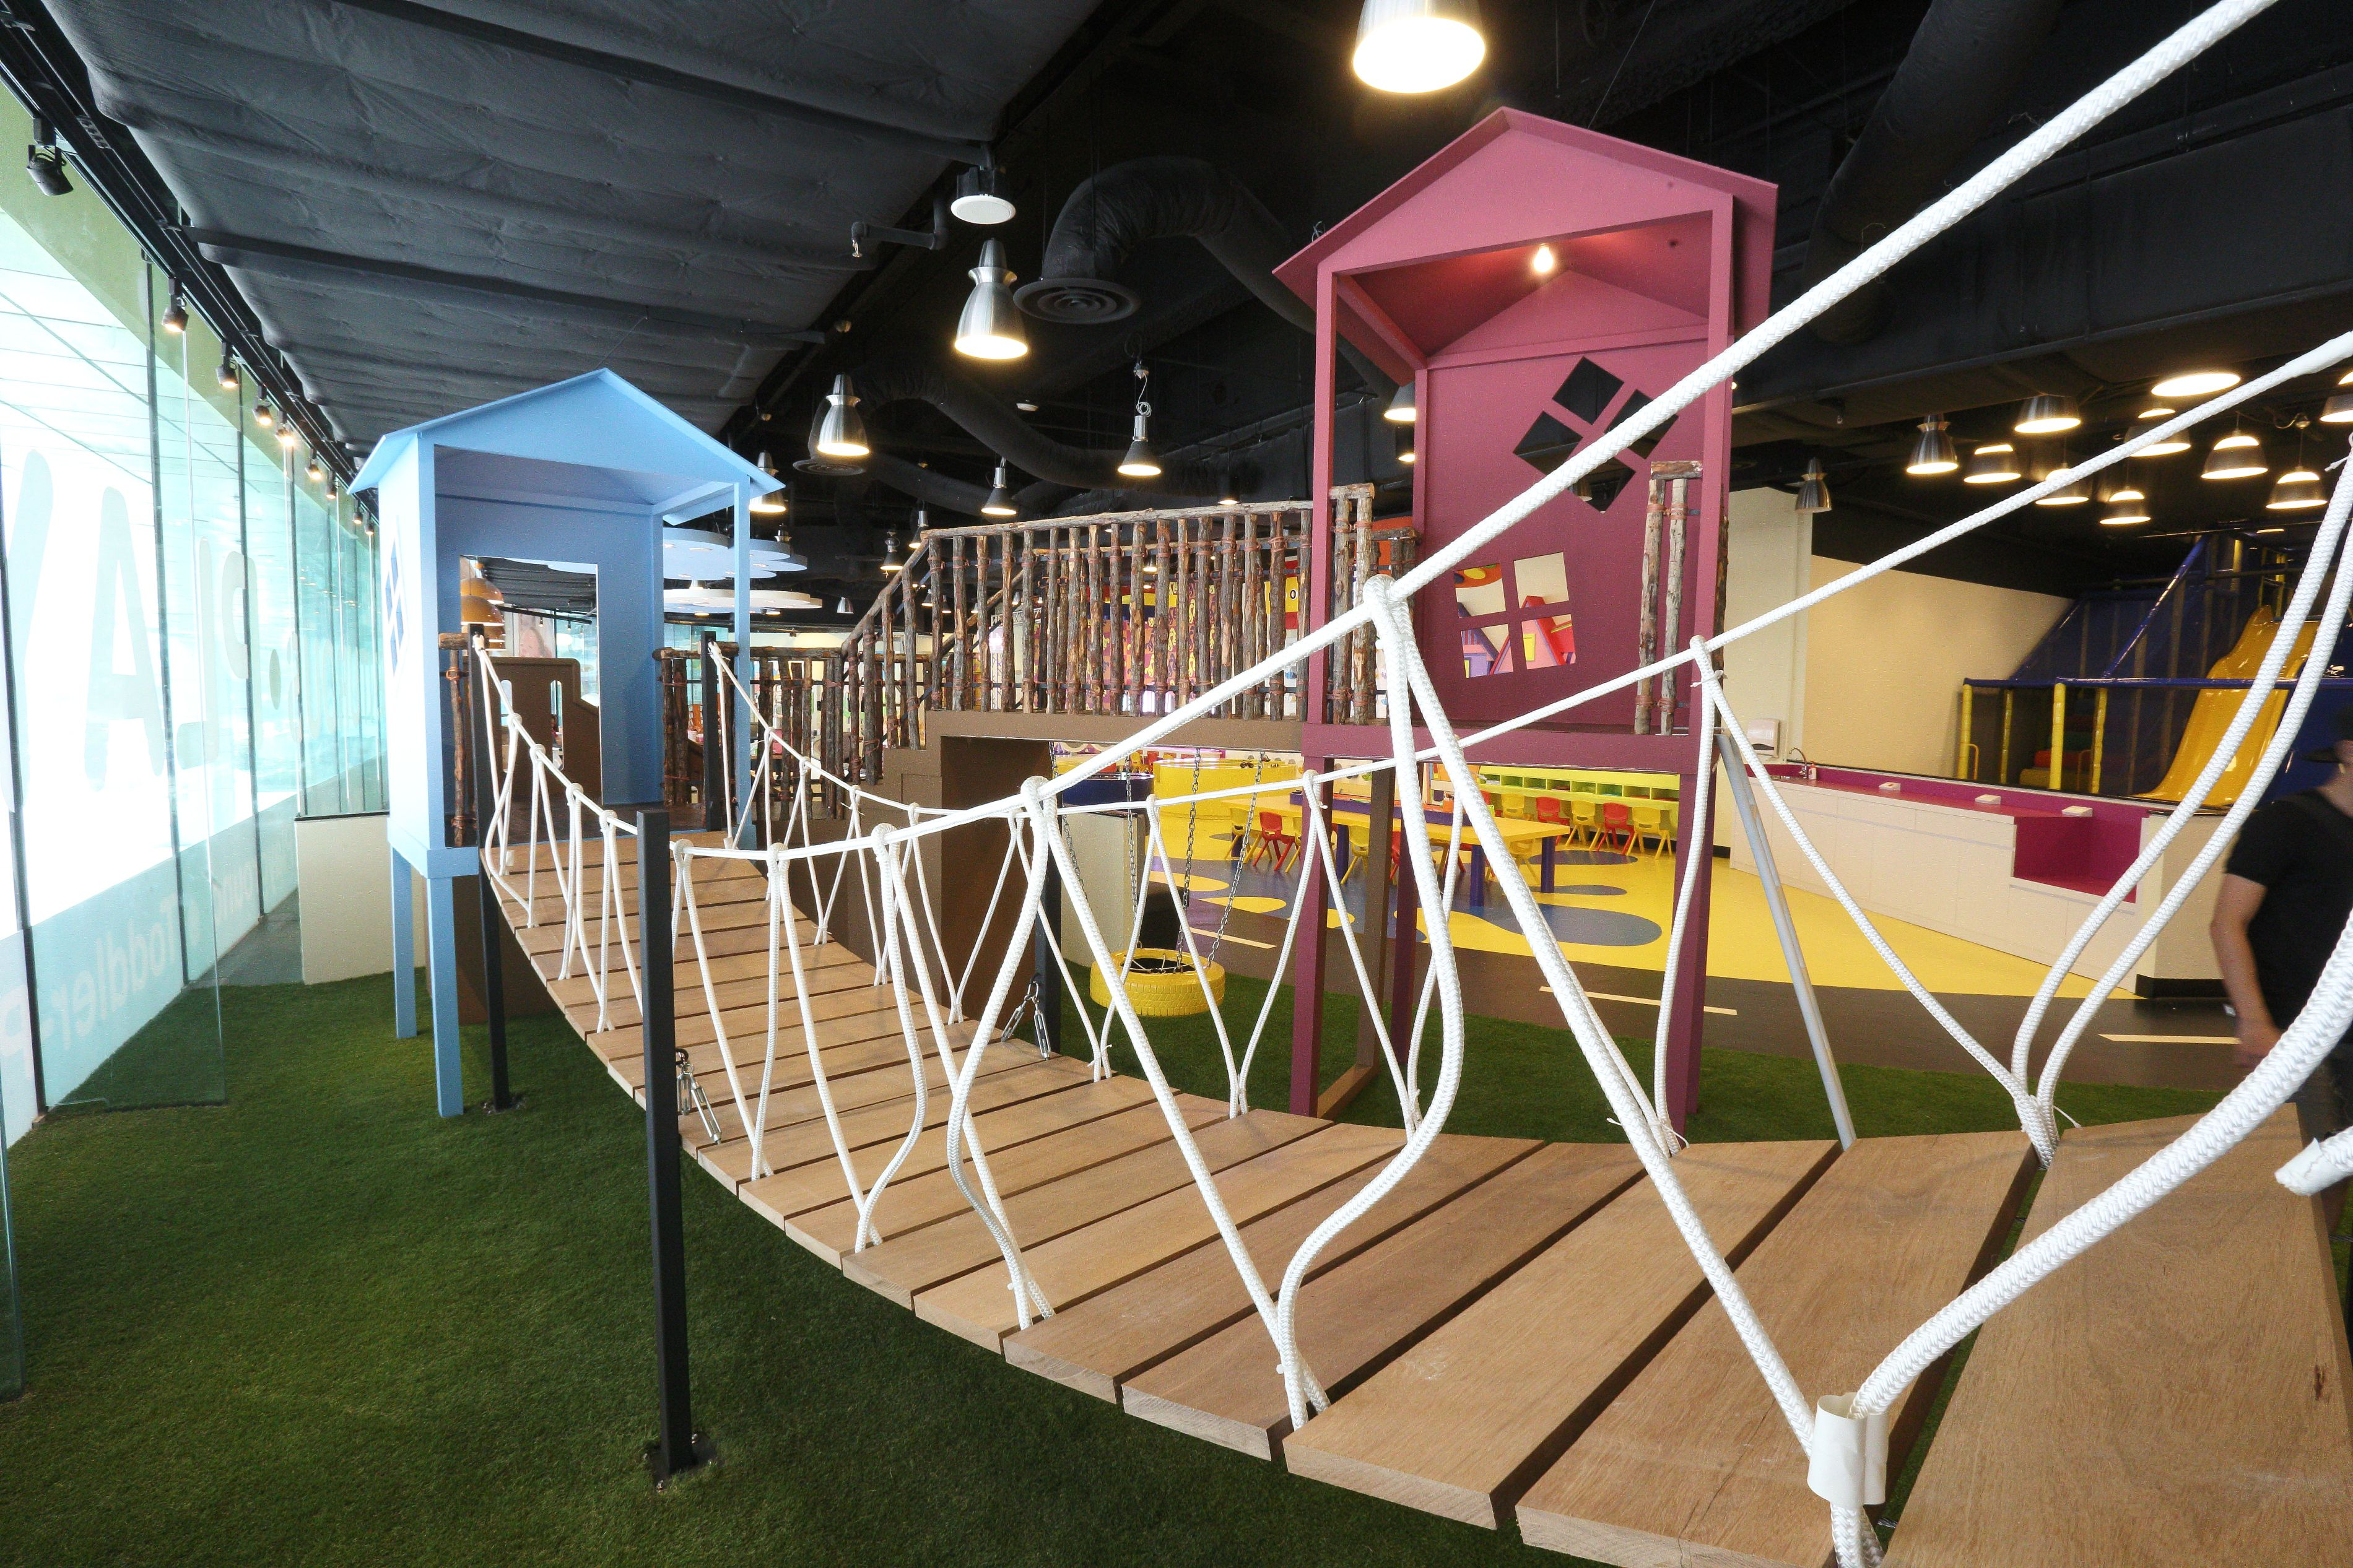 Family dining kids parties birthday party places best for Best indoor playground for birthday party